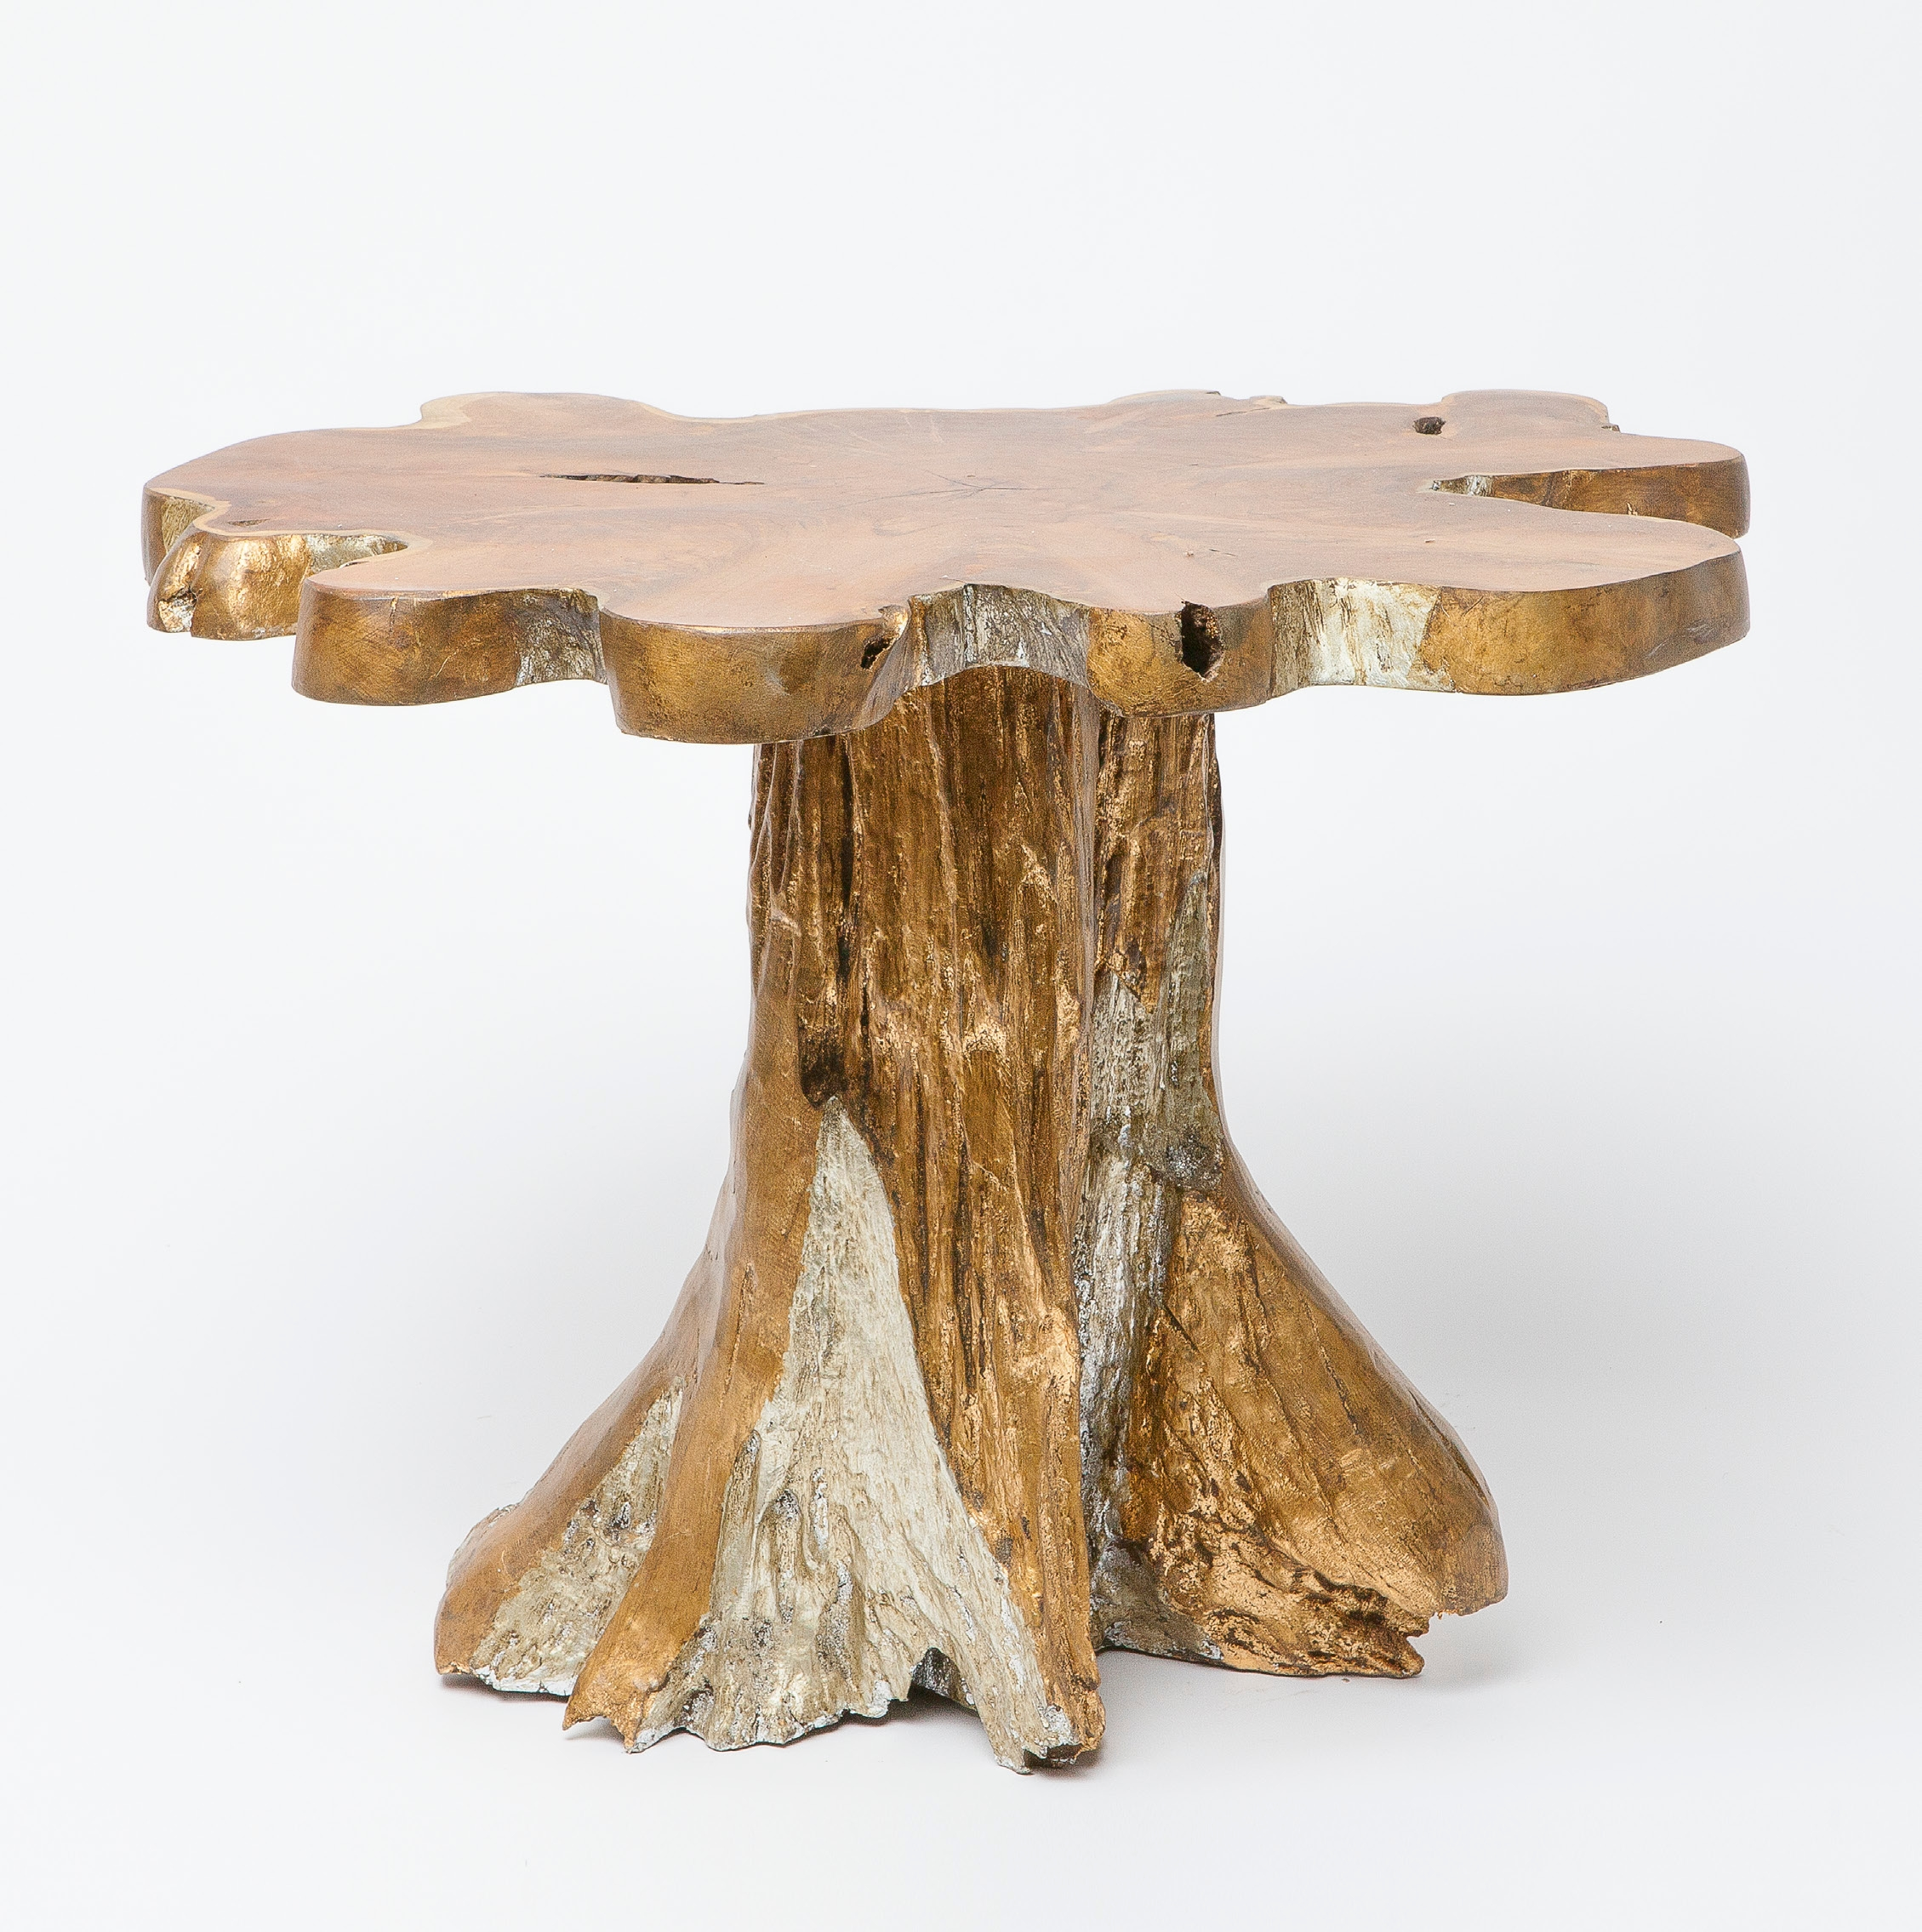 jessa teak root side table mecox gardens fnst timor wood trunk accent glass lamp shades for lamps bathroom vanities drawer console chair legs ashley furniture office desk acrylic